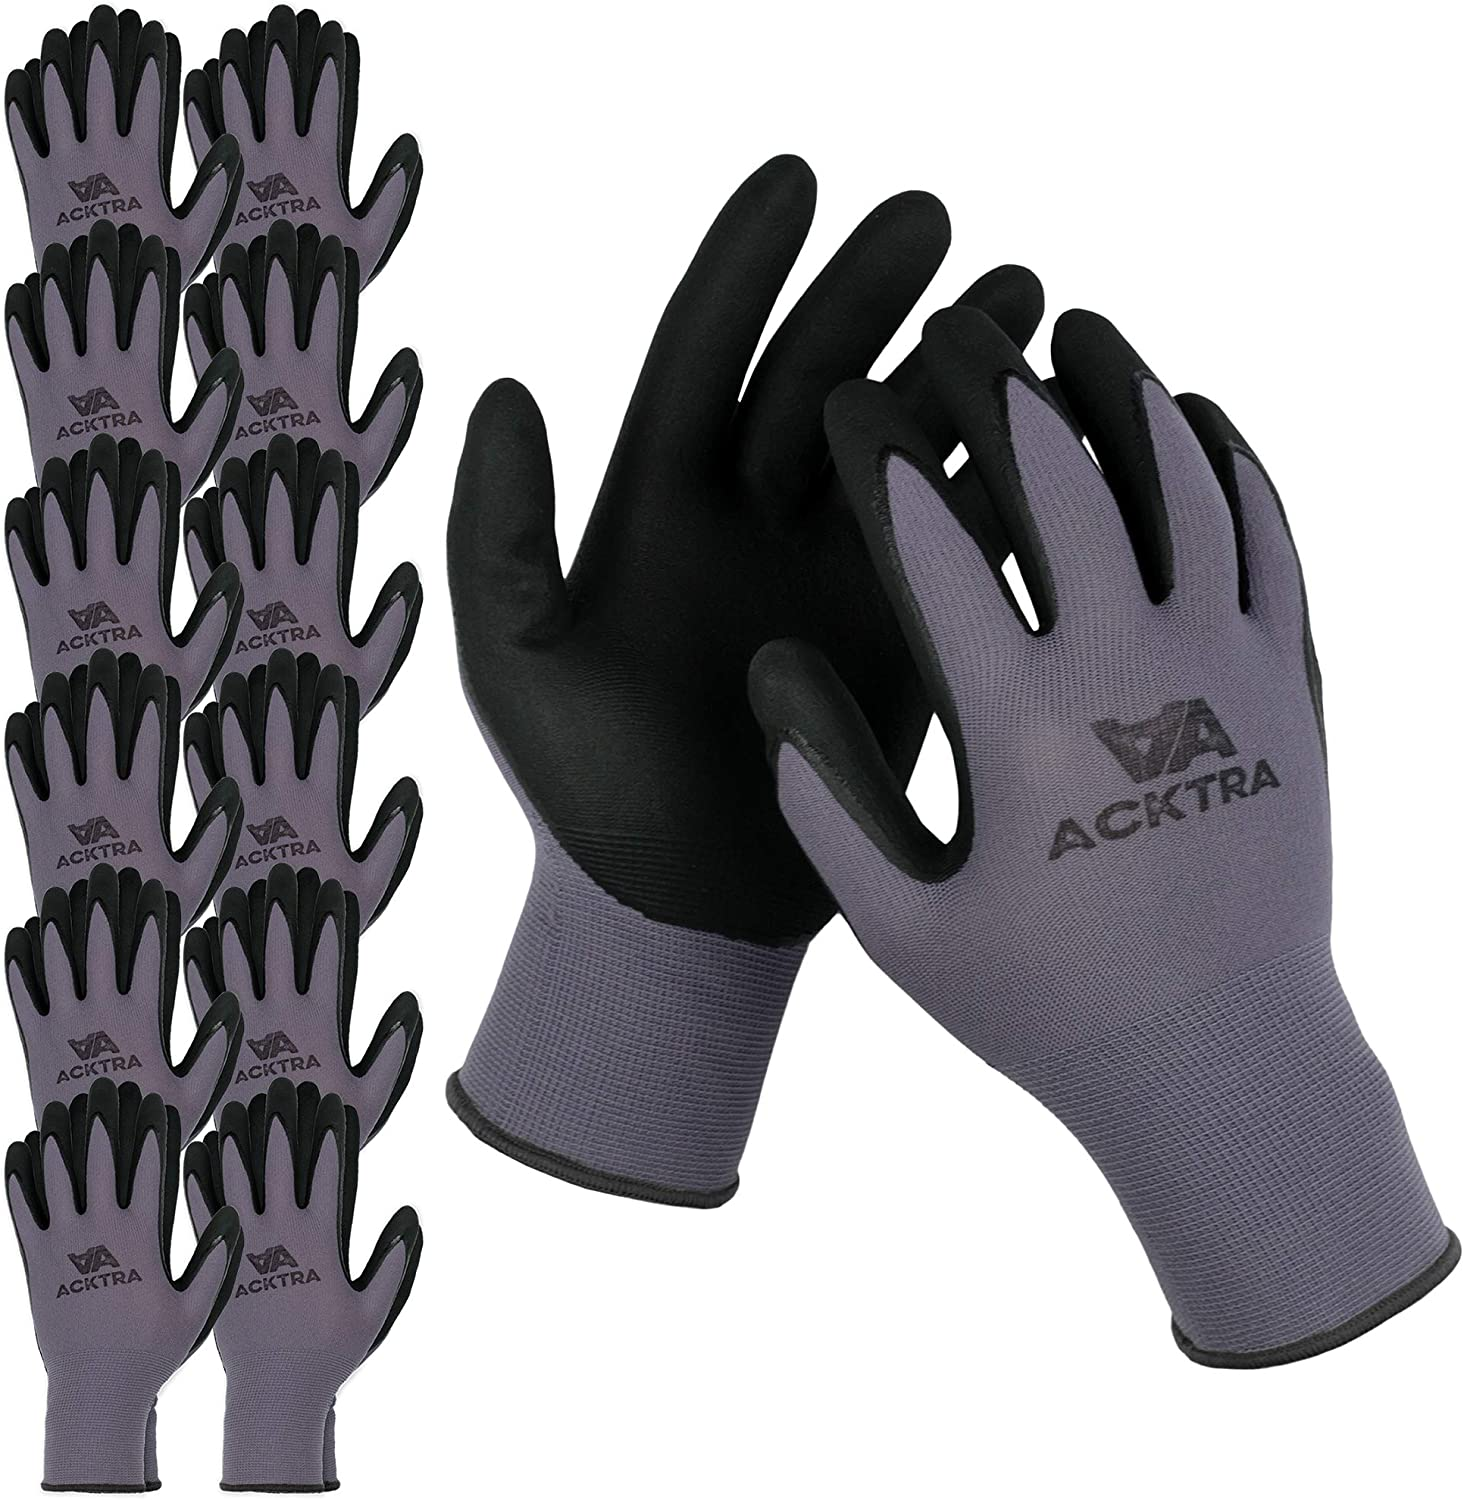 ACKTRA WG019 Safety WORK GLOVES Popular product quality assurance 12 pairs Grey 15G Seamless Nylo